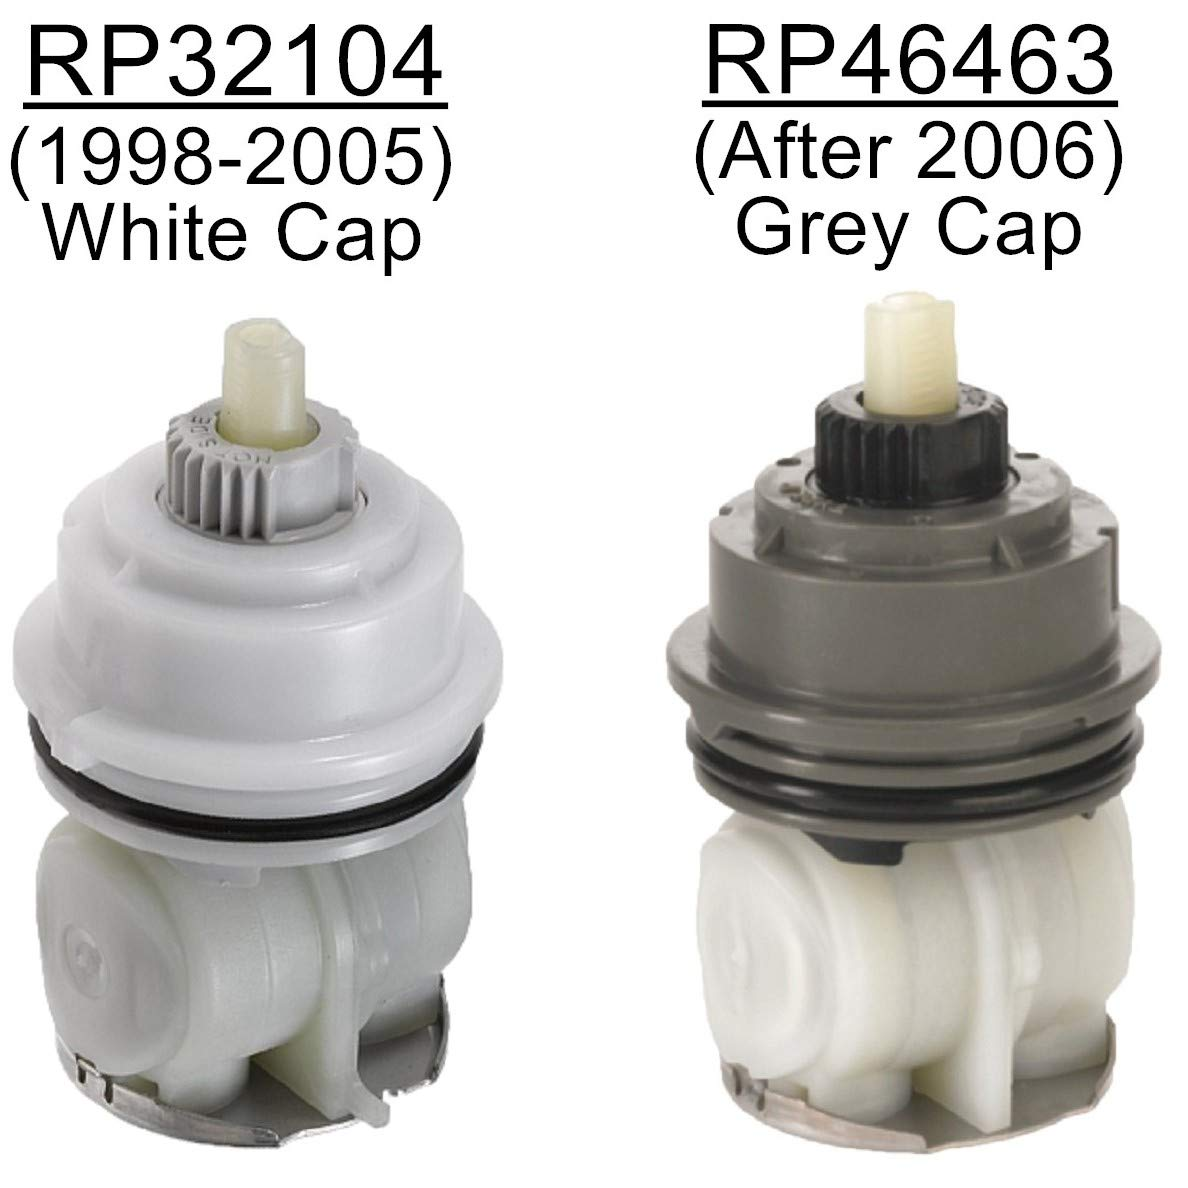 RP46463 Cartridge Assembly Replacement For Delta MultiChoice 17 Series (2006-Present) Shower Faucet RP46073 Seat and Spring Adapter included